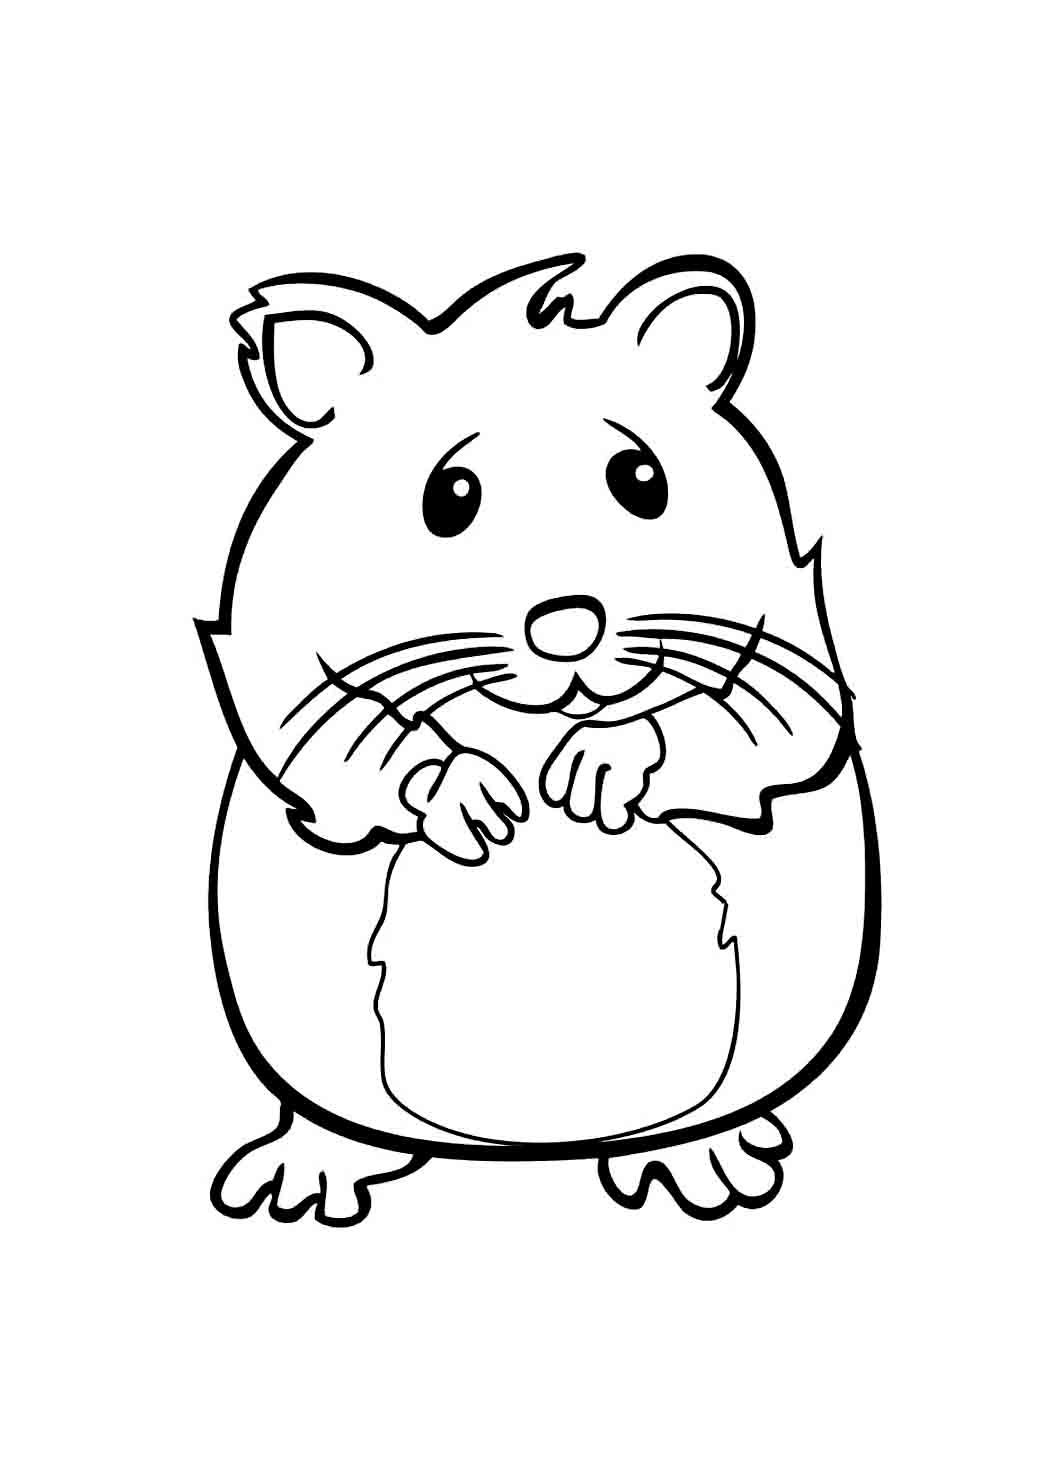 Zhu Zhu Pets coloring page with few details for kids